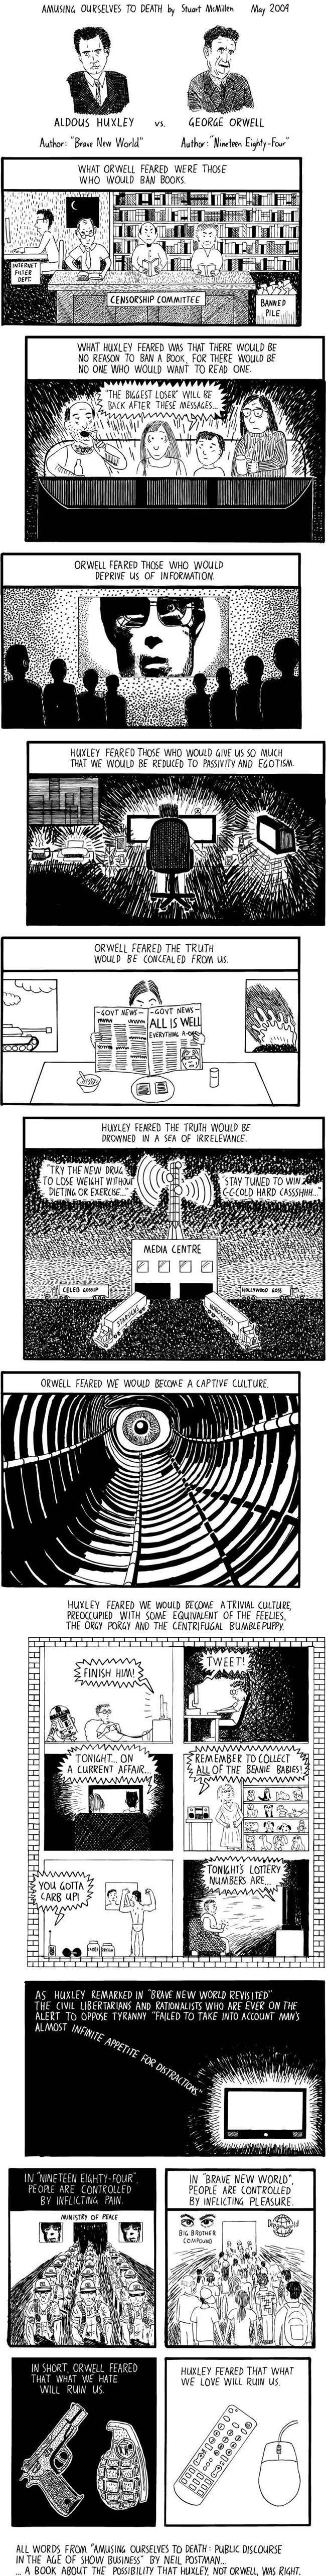 huxley orwell amusing ourselves to death Huxley vs. Orwell   the comic inspired by Neil Postmans Amusing Ourselves to Death